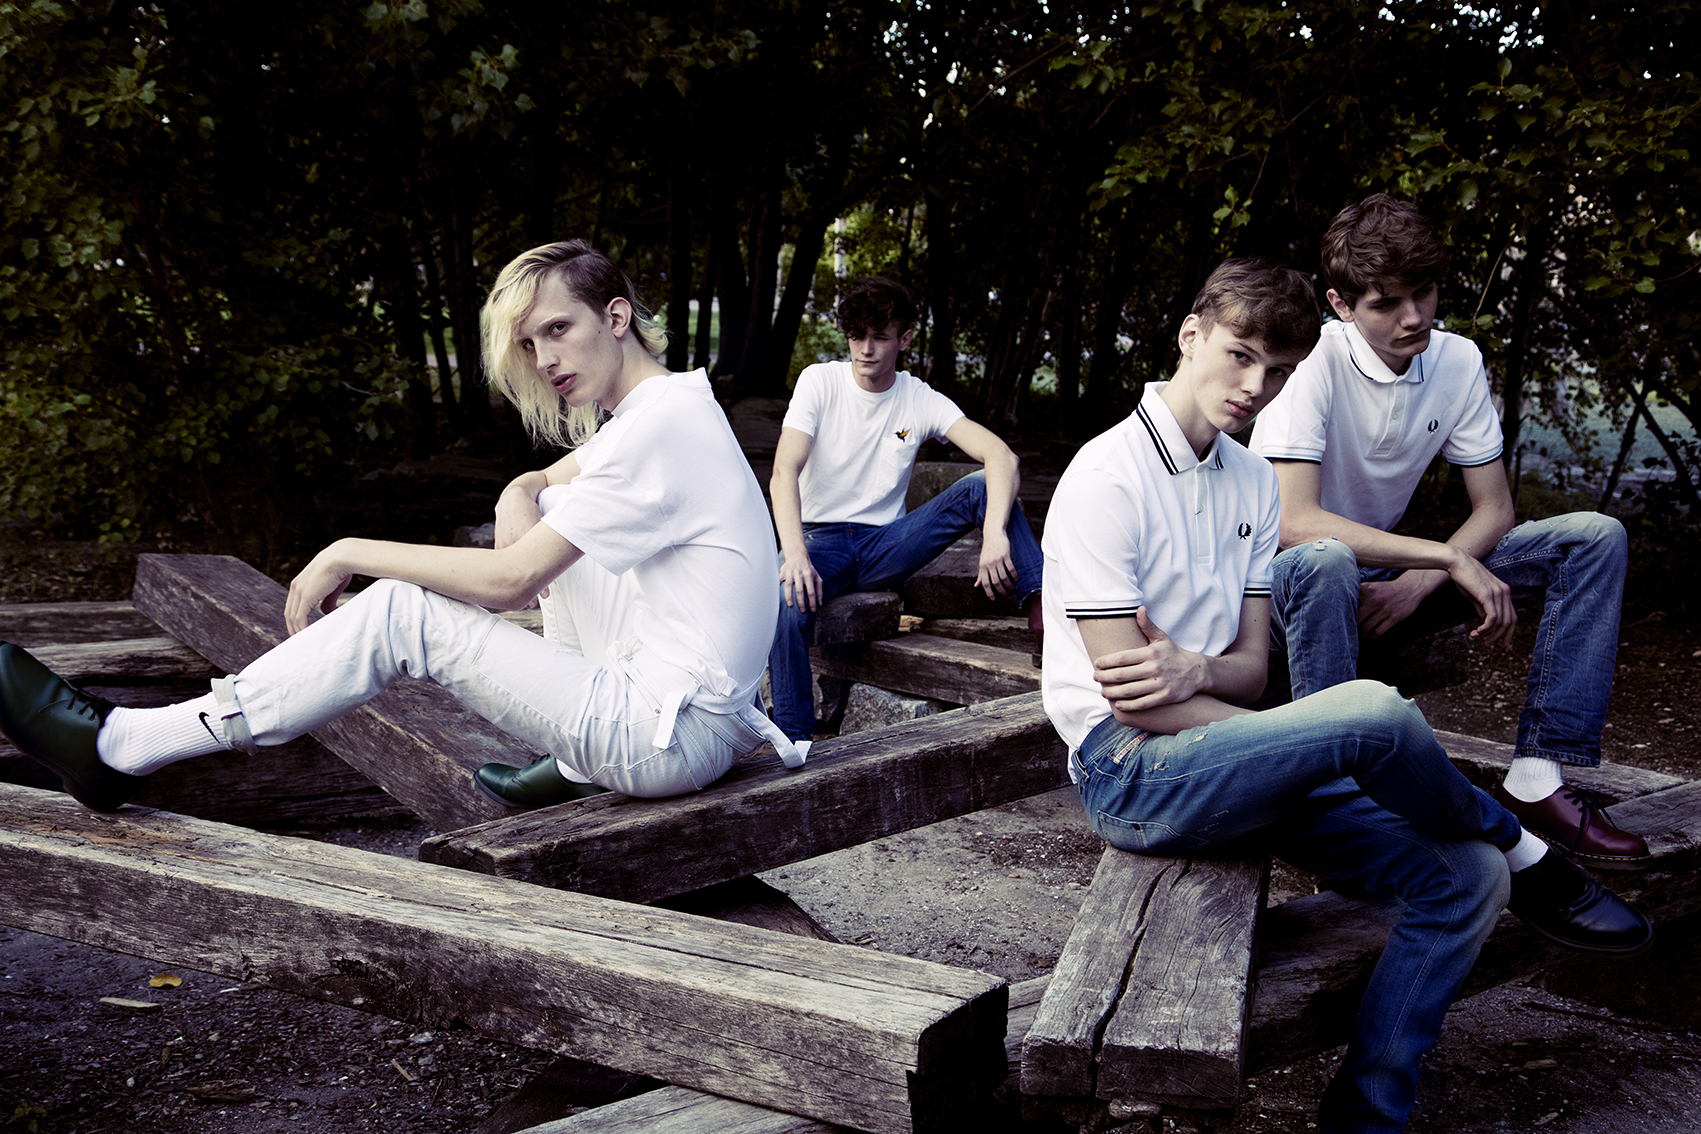 me-style-jeans-special-izaio-models-010